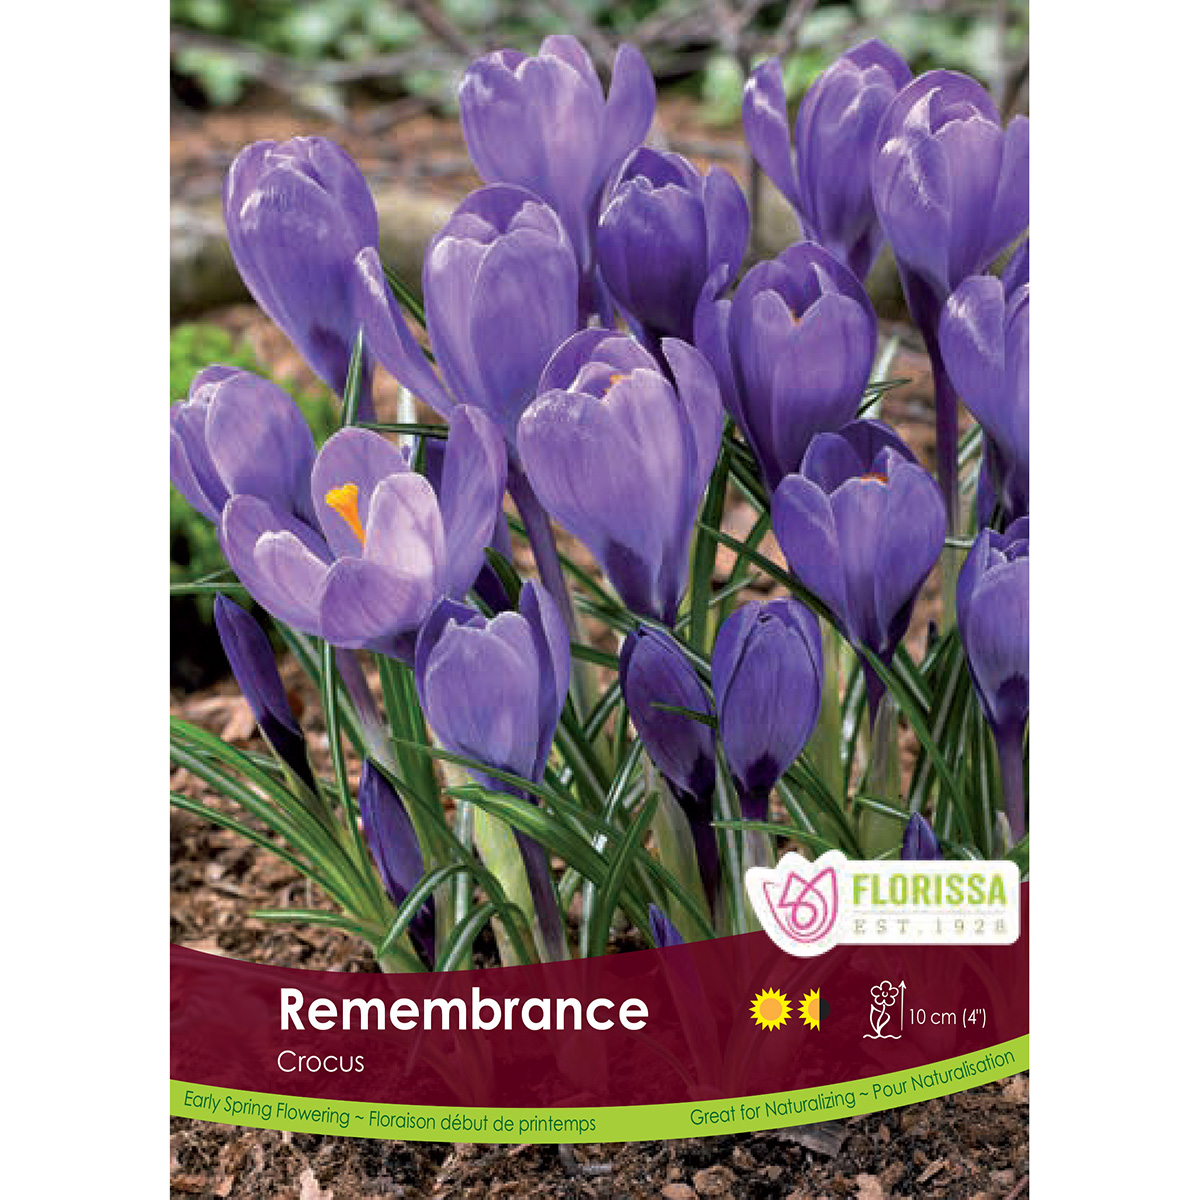 Crocus 'Remembrance' Bulk Bulbs